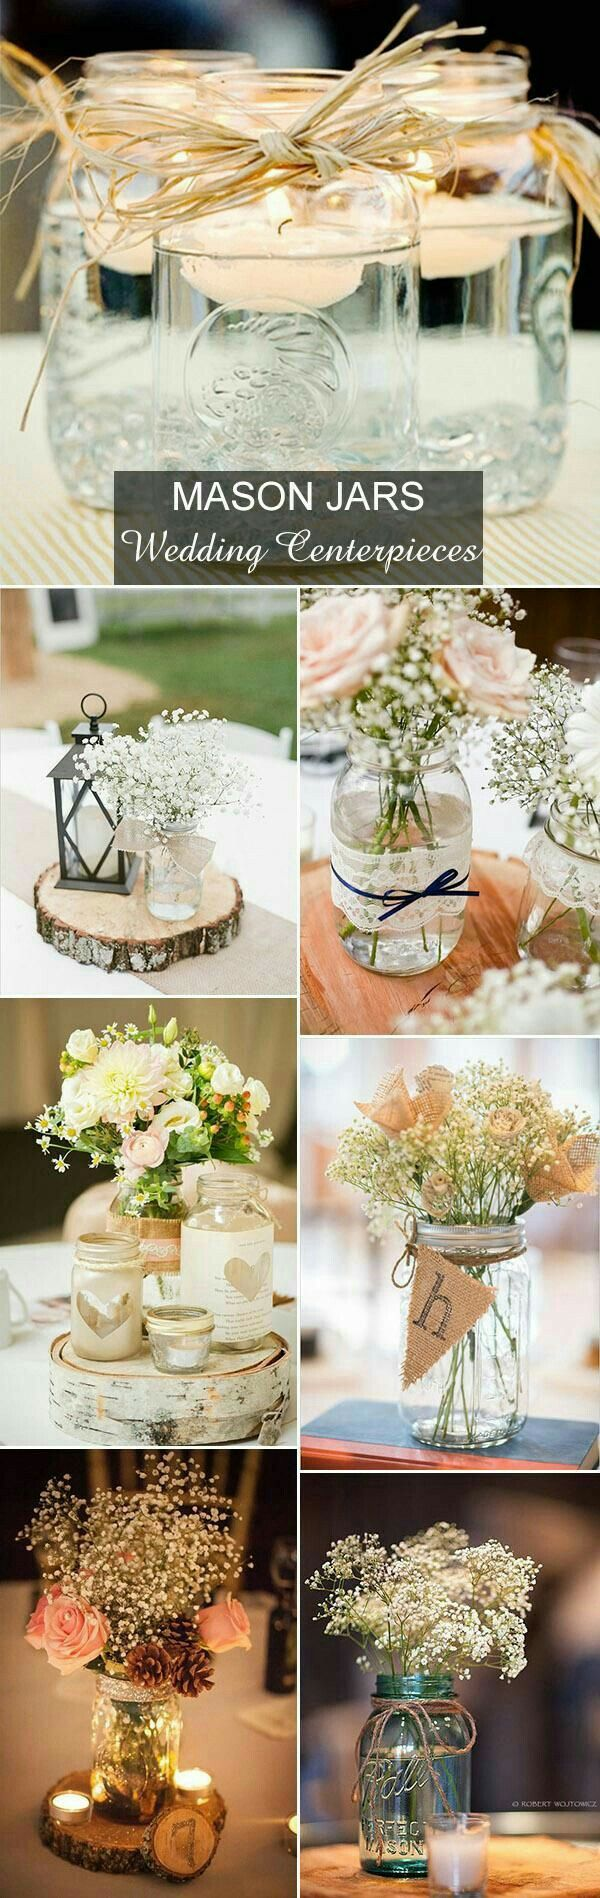 Incorporating Some Mason Jars, Lace, Ribbon Or Some Twine Into Your Wedding  Planning Will Make It A Dream Rustic Themed Event. Thereu0027re Many Ways To  Use ...